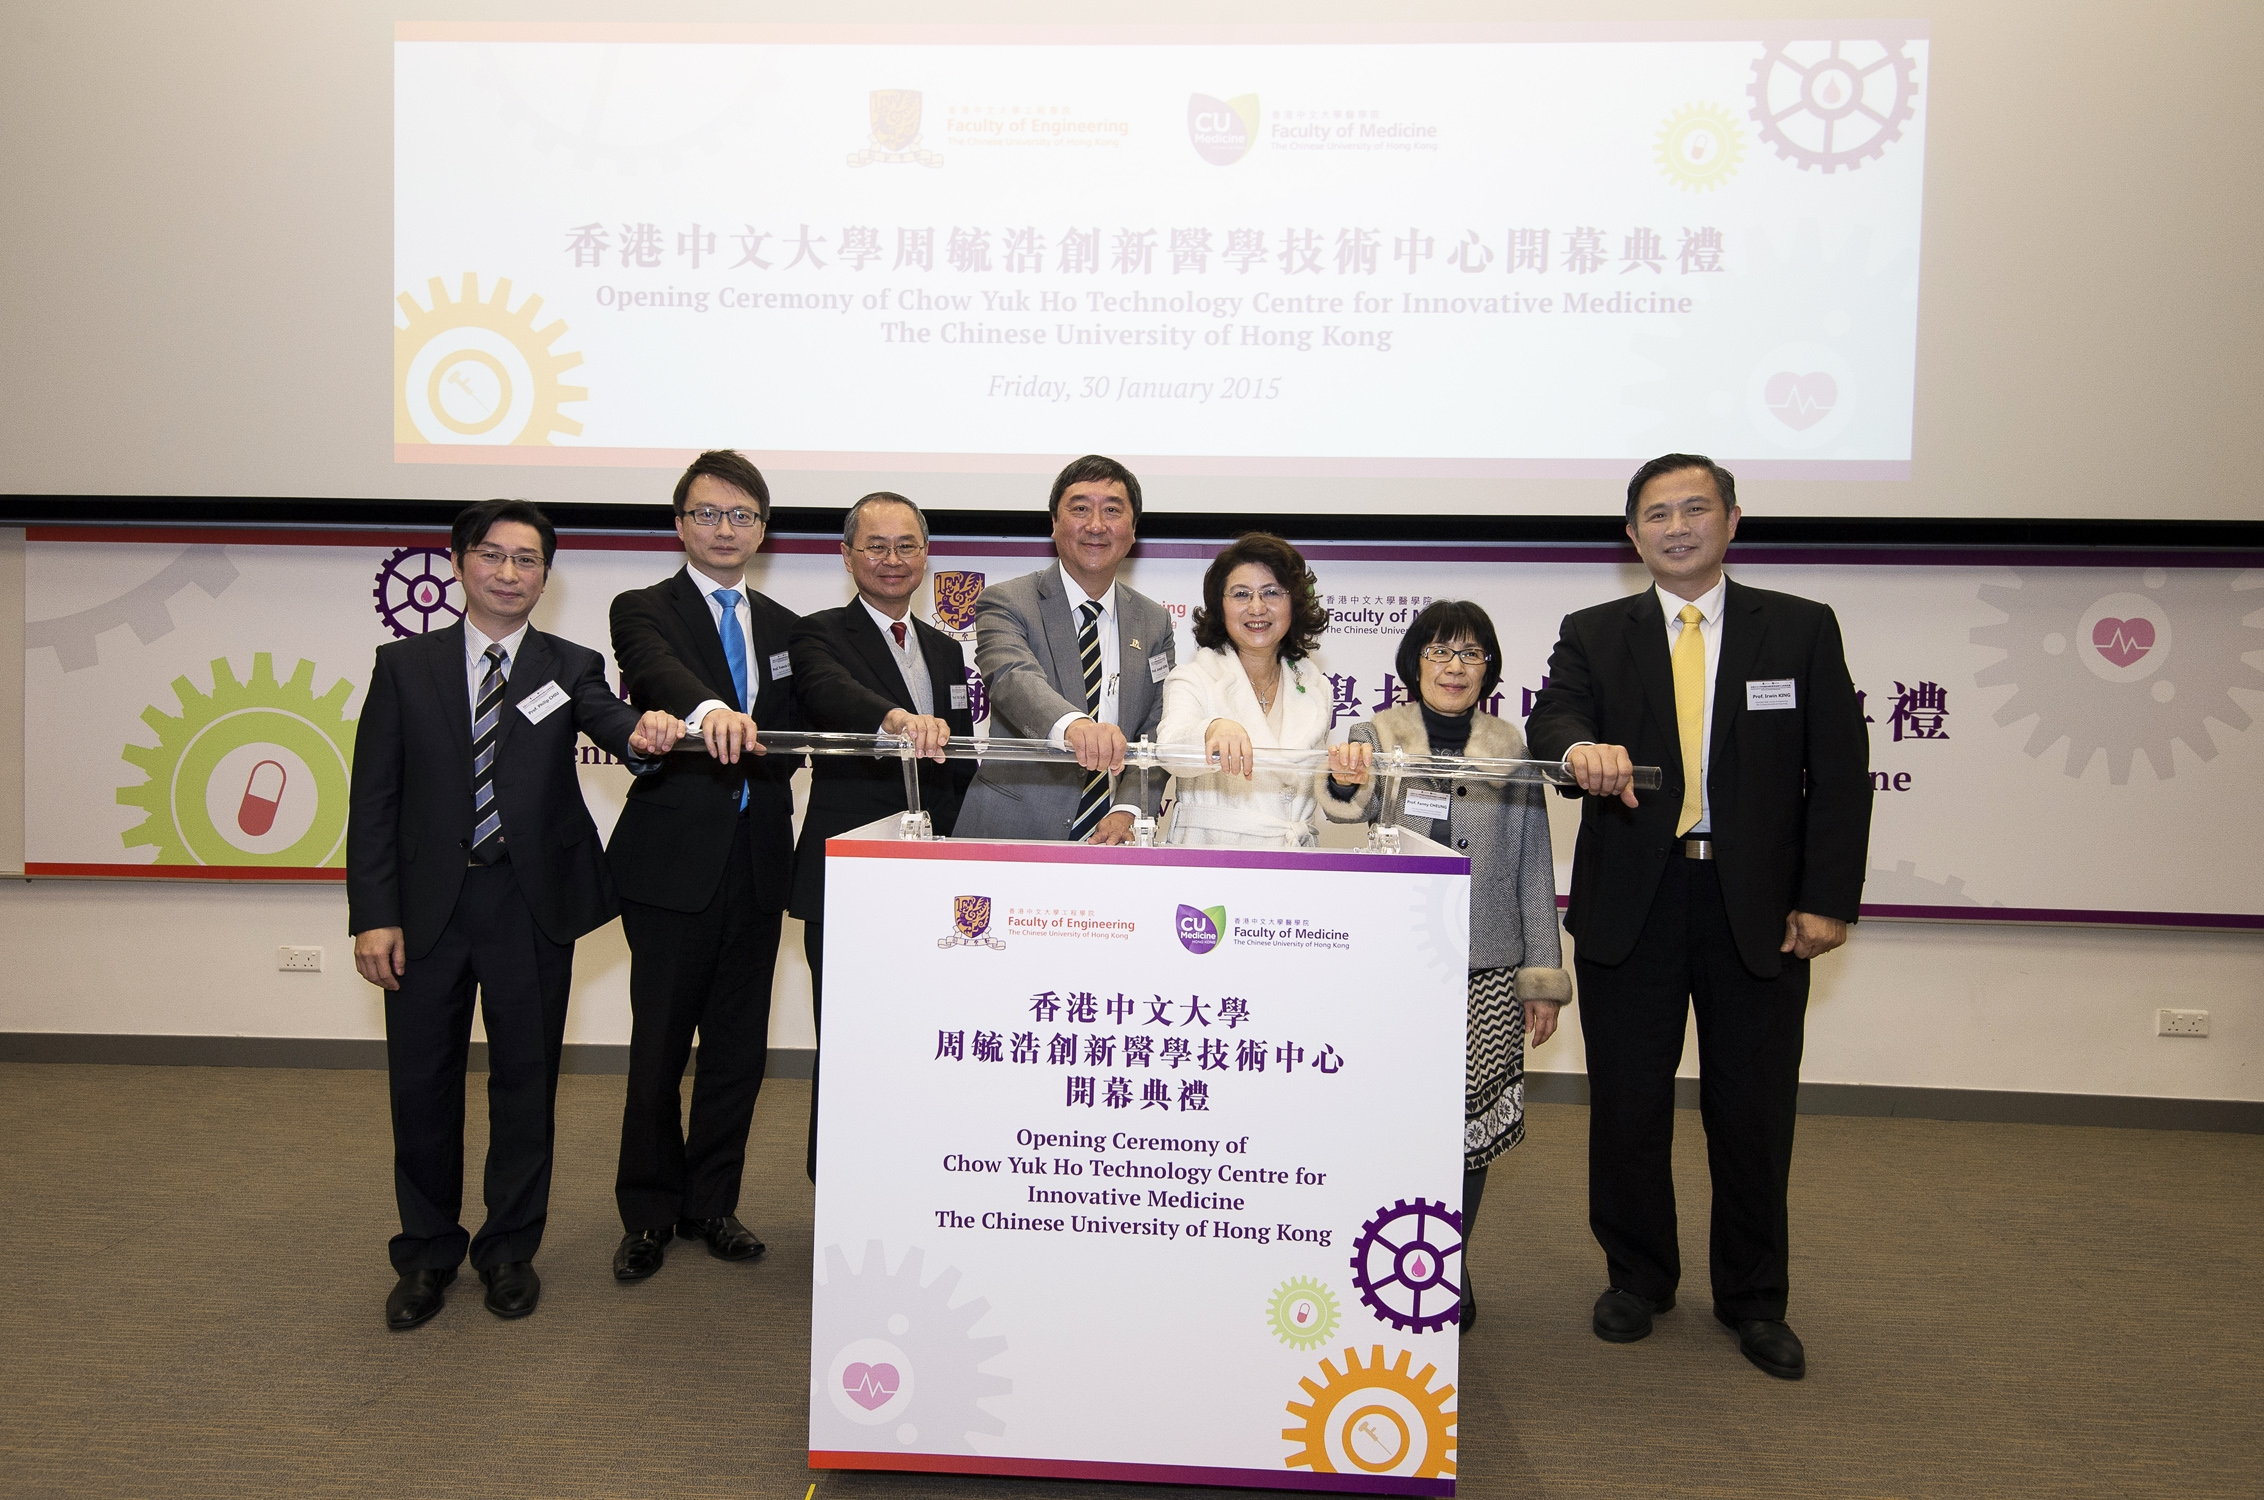 (From left) Prof. Philip W.Y. Chiu, Director of the Chow Yuk Ho Technology Centre for Innovative Medicine, CUHK;  Prof. Francis K.L. Chan, Dean, Faculty of Medicine, CUHK;  Prof. T.F. Fok, Pro-Vice-Chancellor and Vice-President, CUHK;  Prof. Joseph J.Y. Sung, Vice-Chancellor and President, CUHK; Miss Janet Wong, Commissioner for Innovation and Technology; Prof. Fanny M.C. Cheung, Pro-Vice-Chancellor and Vice-President, CUHK;  and Prof. Irwin K.C. King, Associate Dean of the Faculty of Engineering, CUHK.